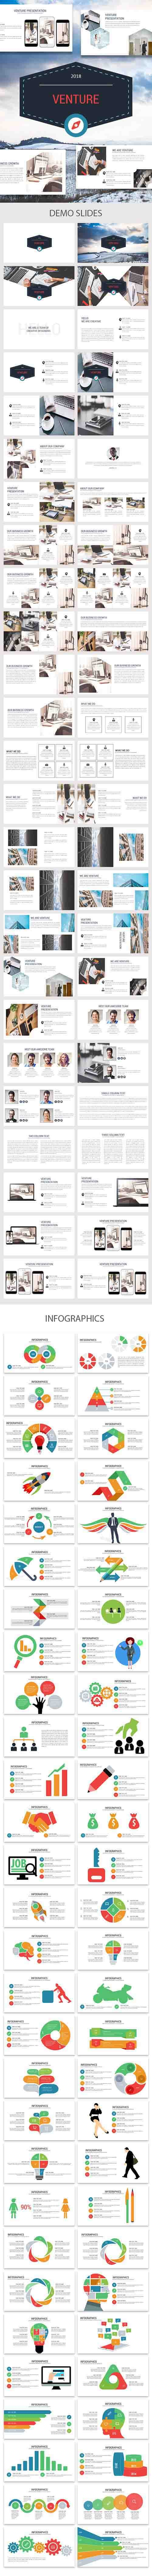 GR - Venture - Multipurpose Powerpoint Presentation 22032337